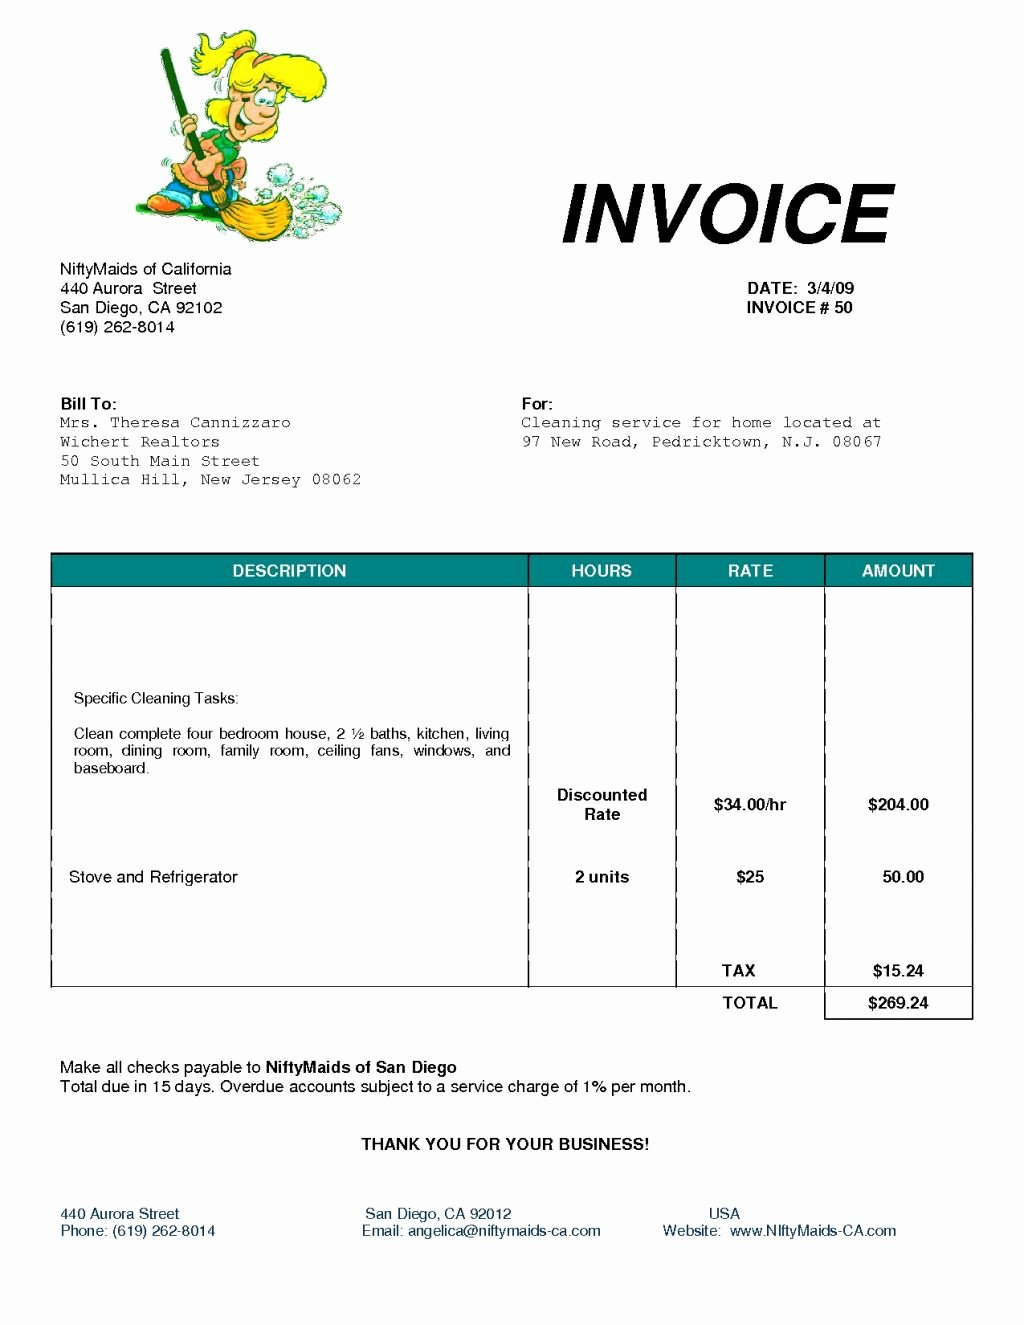 House Cleaning Invoice Template New House Cleaning Service Invoice Spreadsheet Templates for